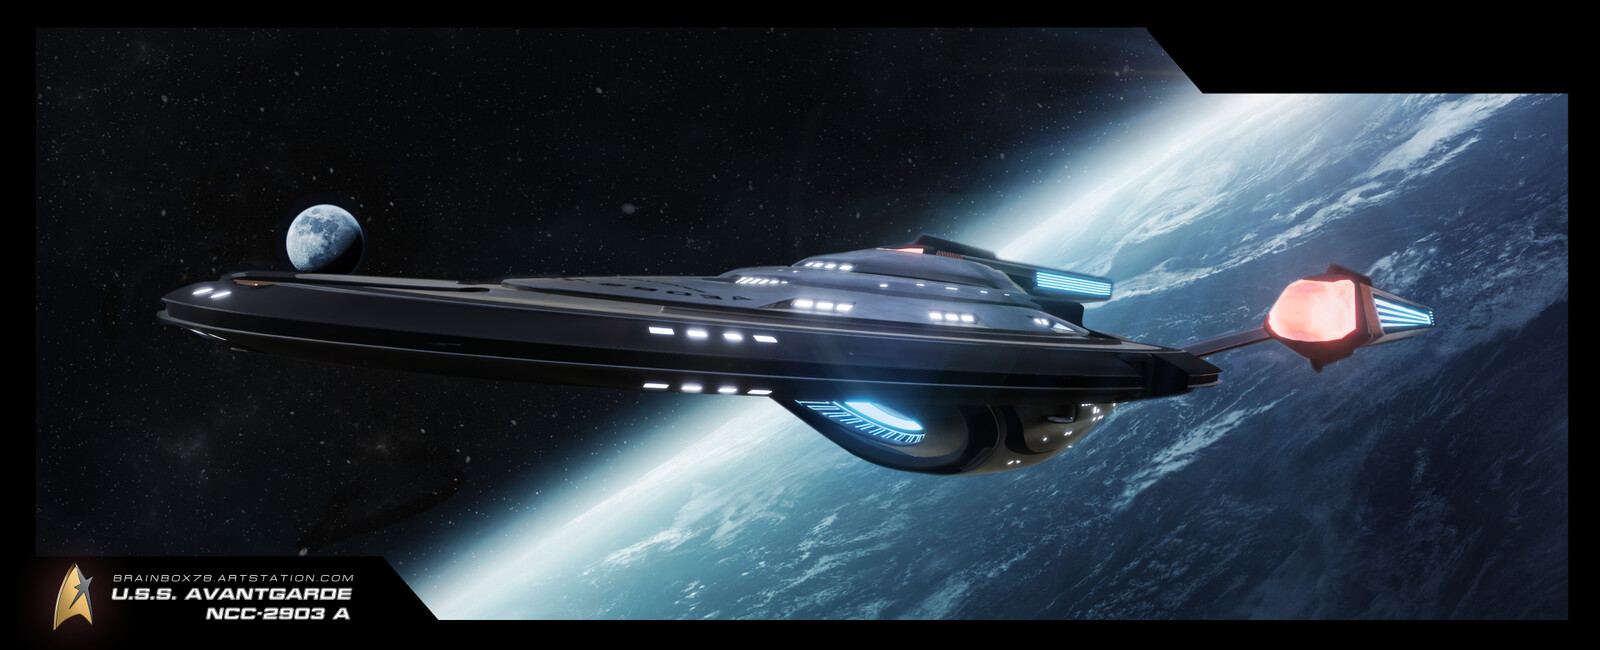 Another Wallpaper of the U.S.S. AVANTGARDE NCC-2903 A